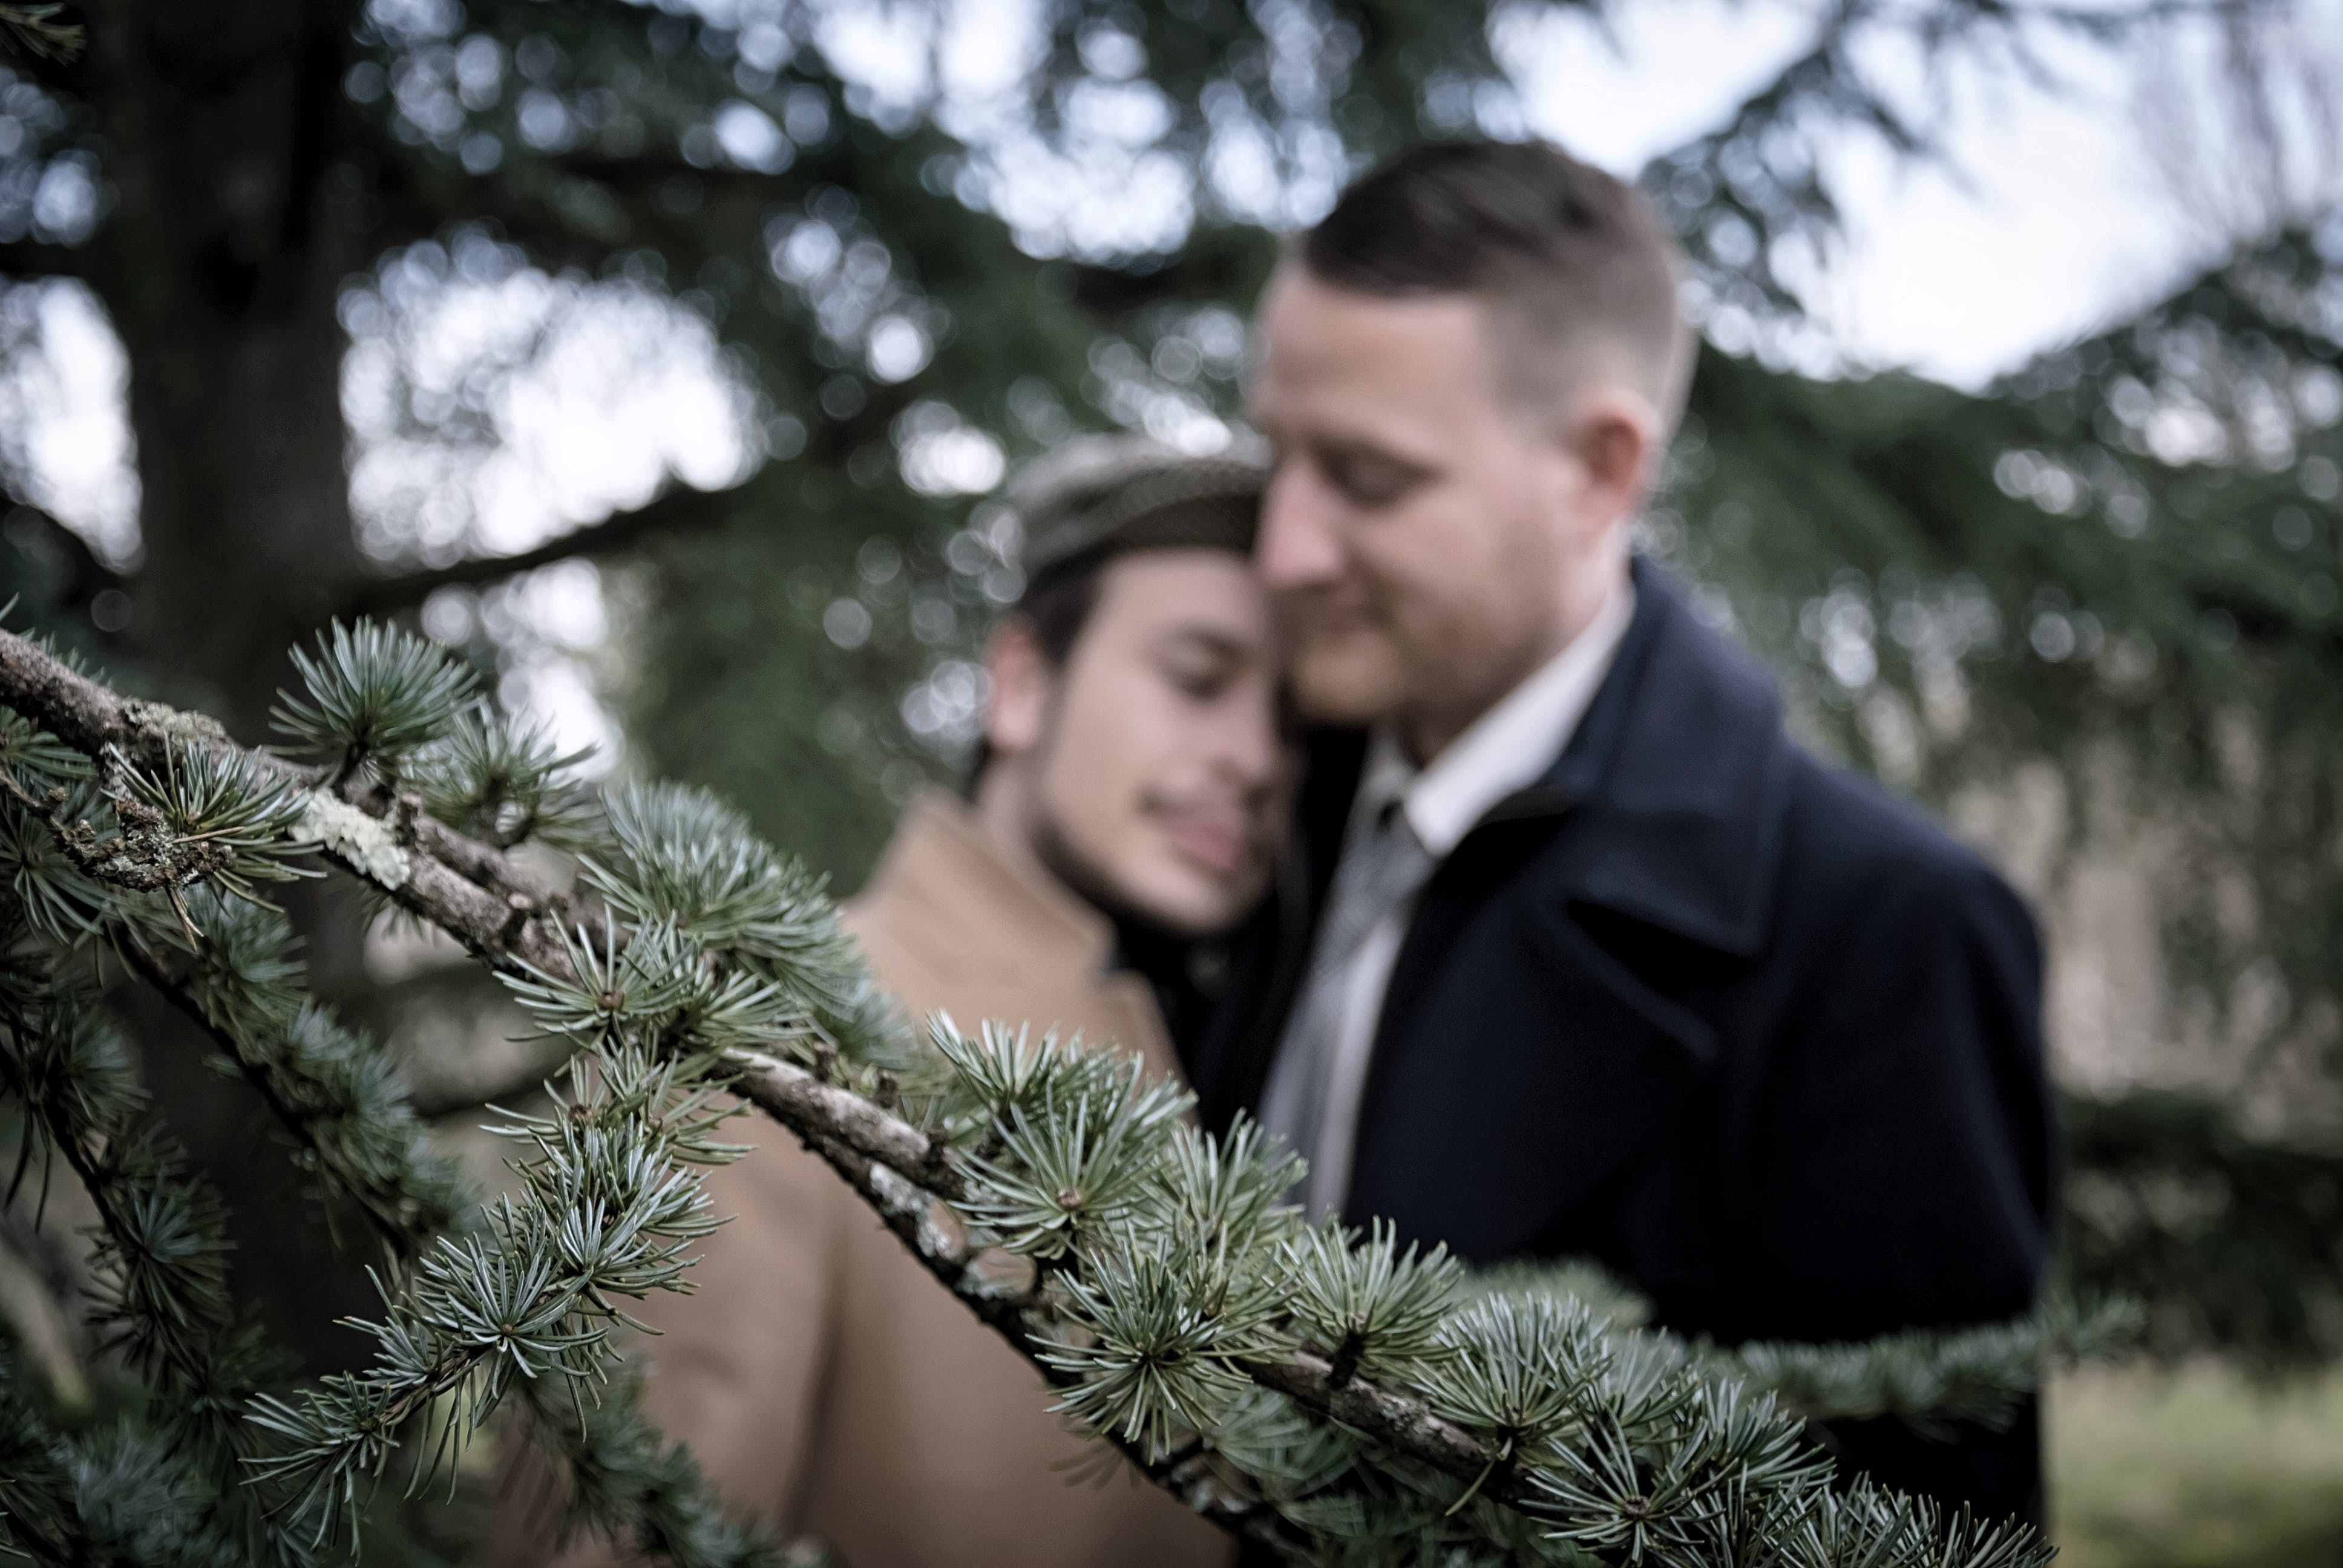 Shallow Focus Photo of Green Leafed Tree in Front of Men